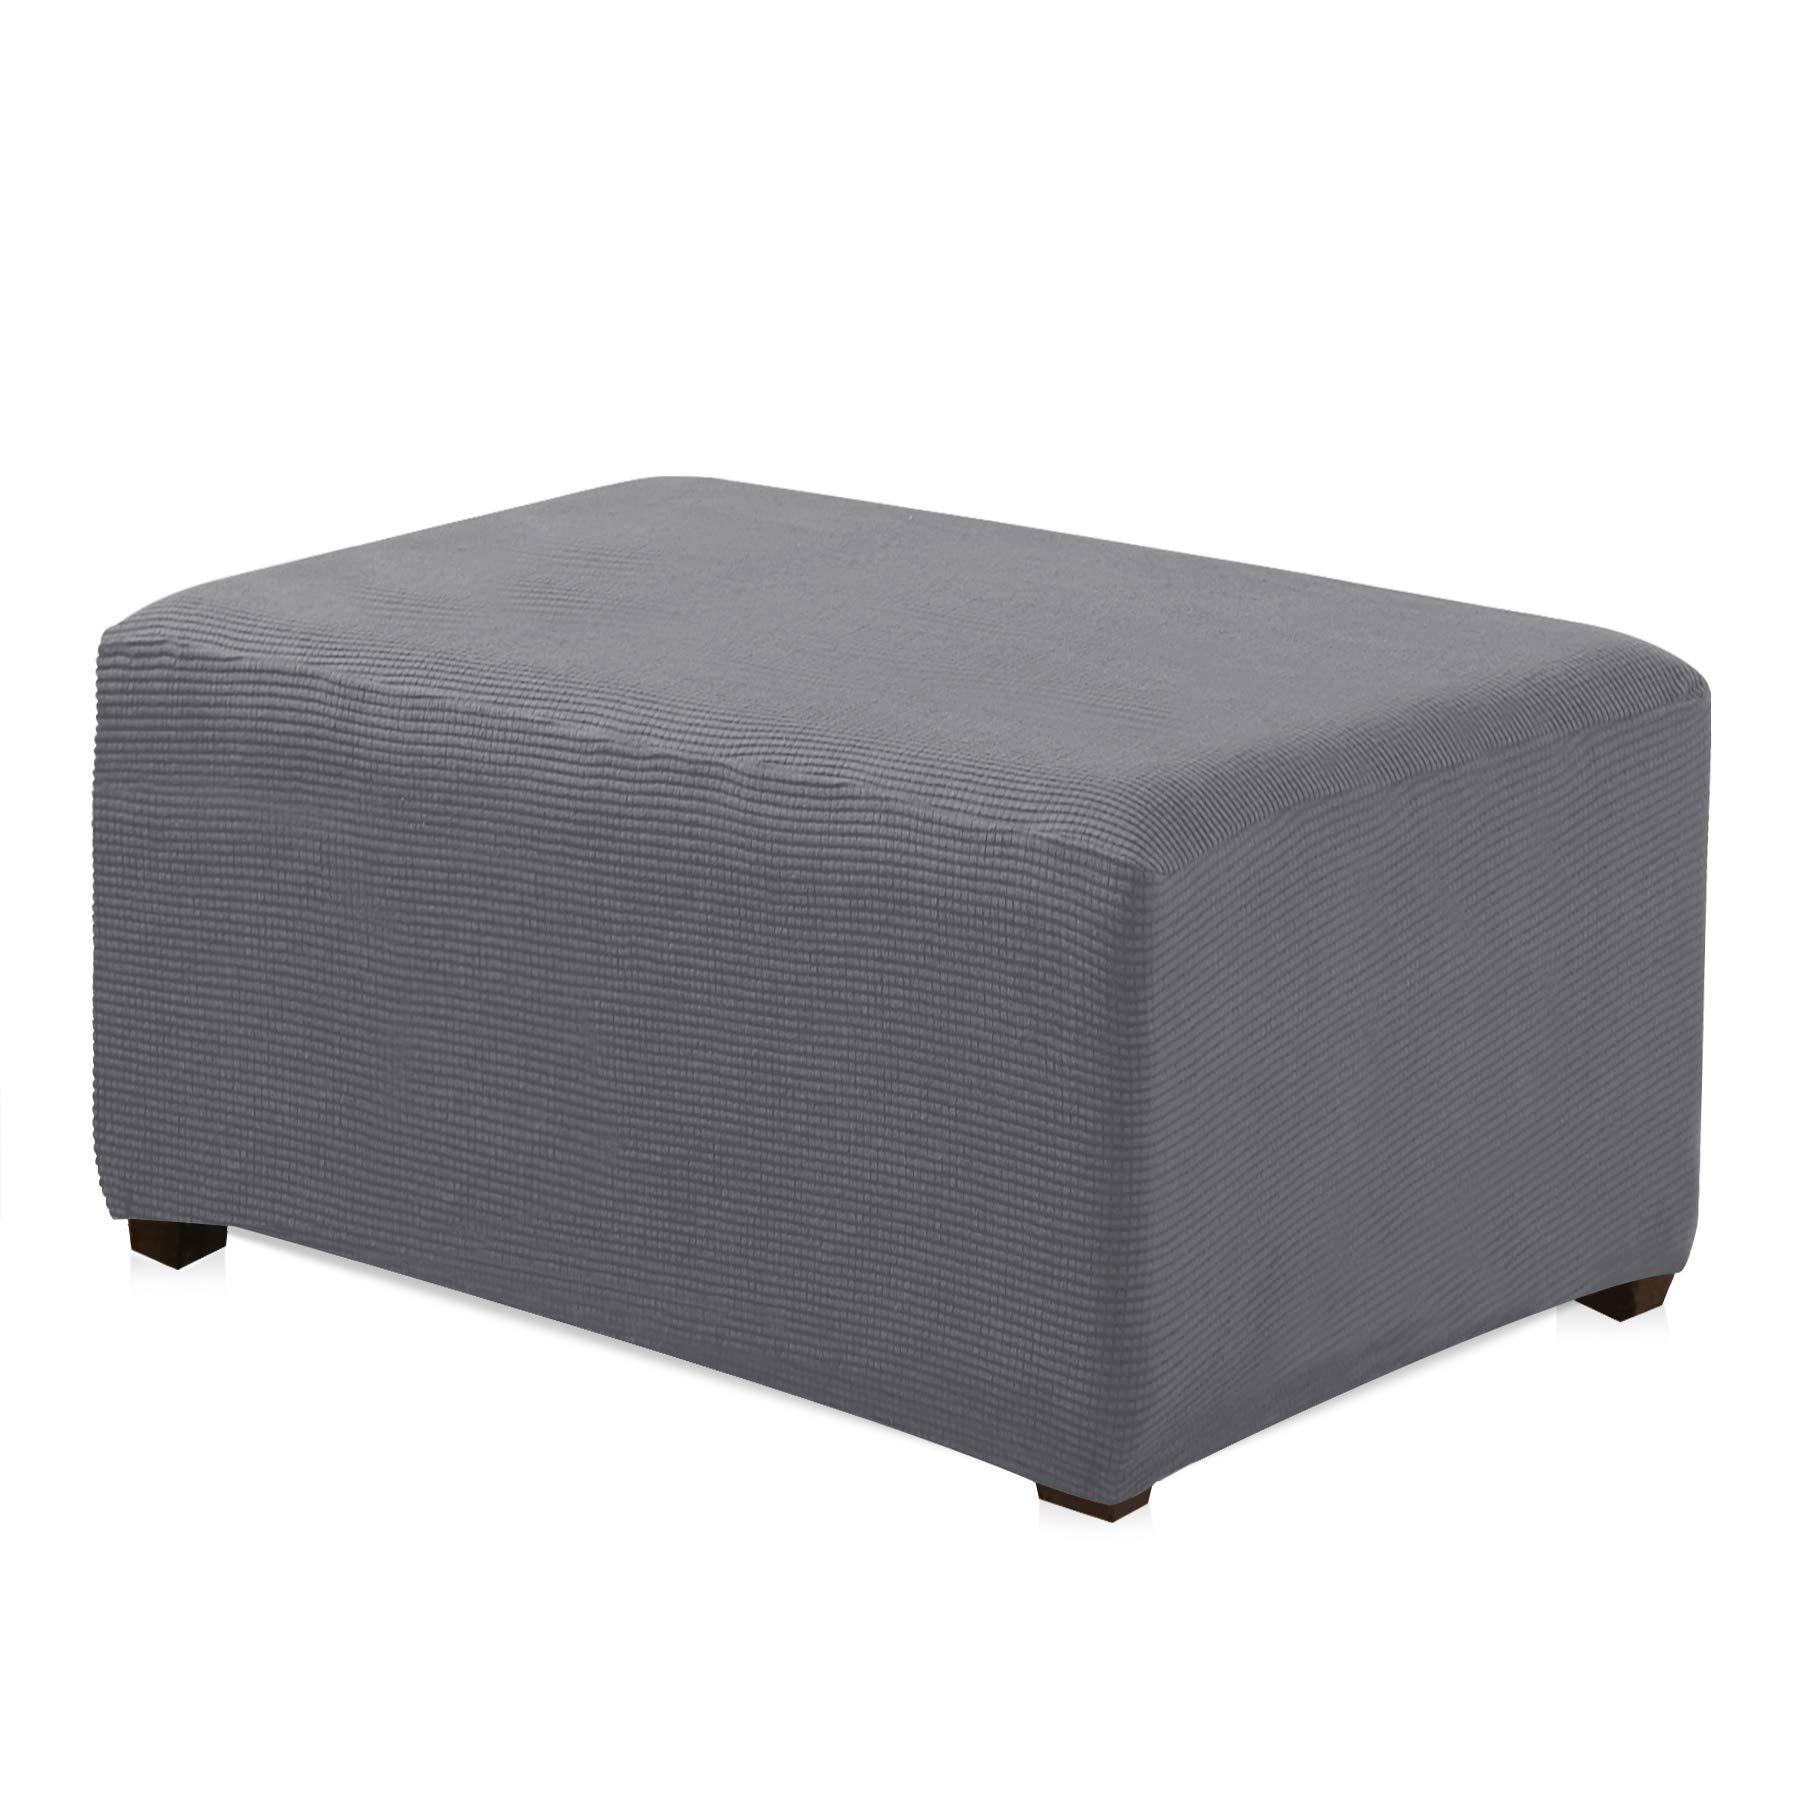 CHUN YI Jacquard Polyester Stretch Fabric Oversized Ottoman Slipcover for Living Room (Oversize, Light Gray)